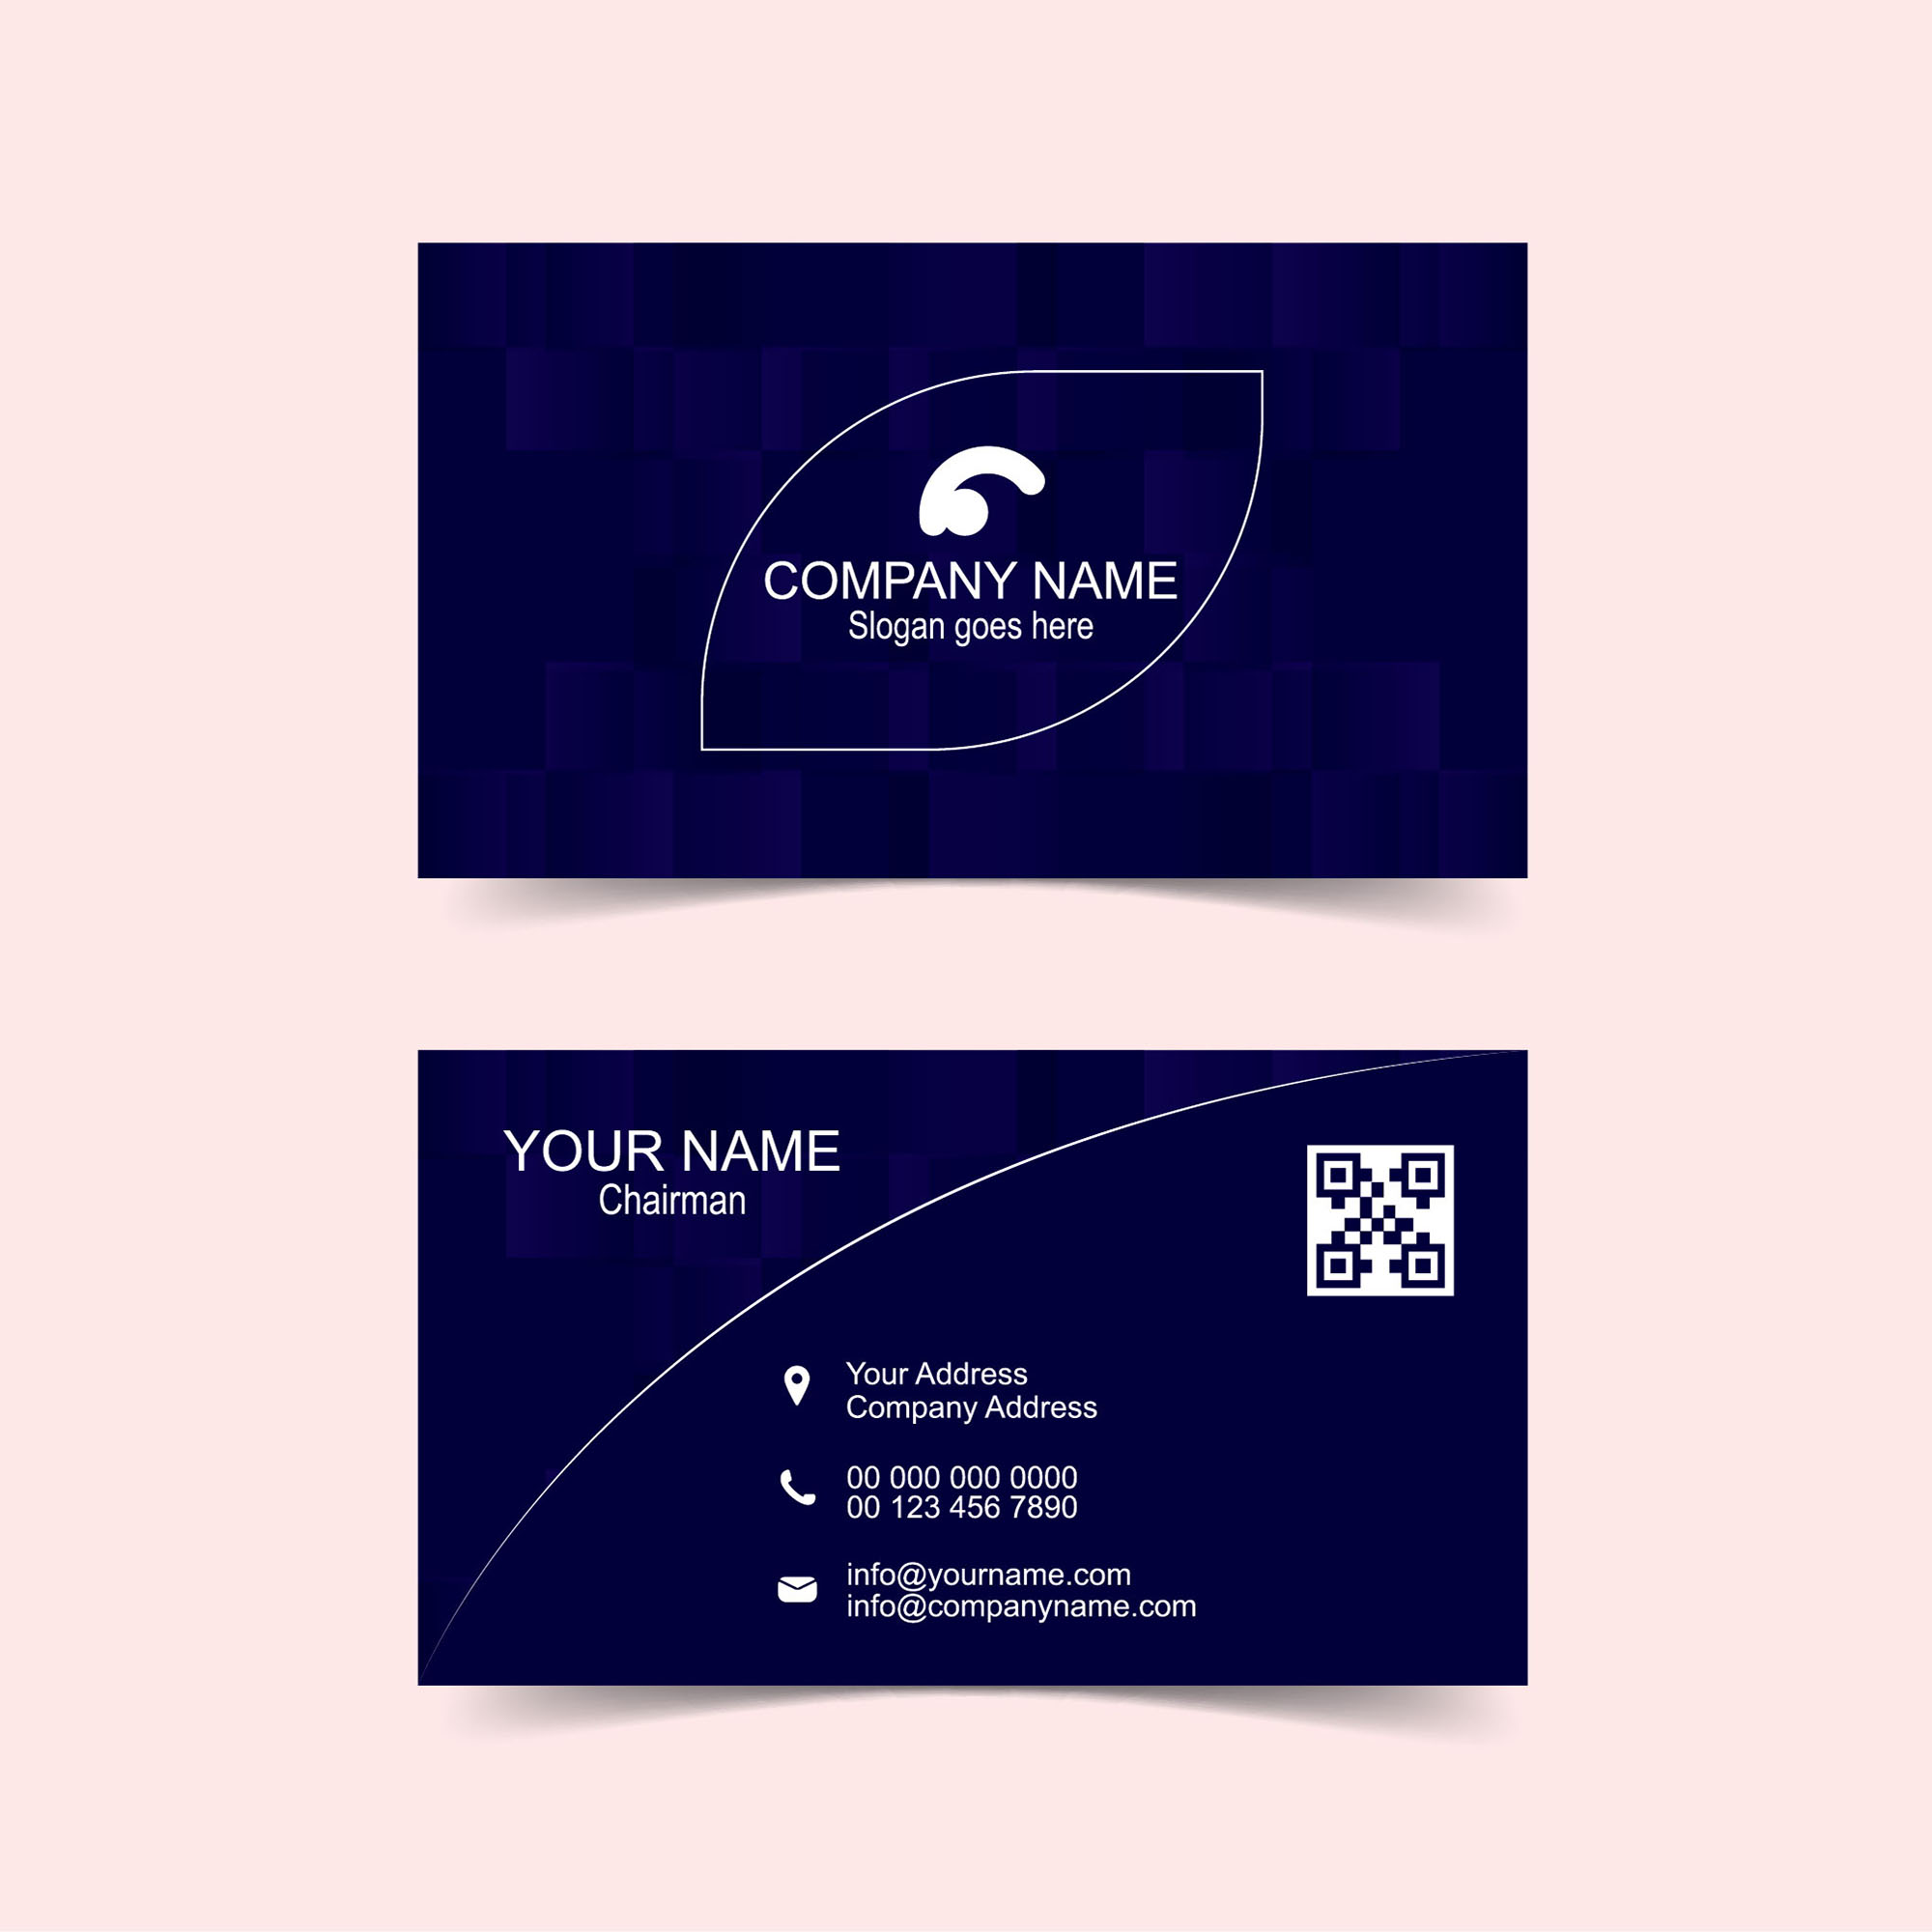 Abstract modern blue business card design wisxi business card business cards business card design business card template design templates wajeb Choice Image